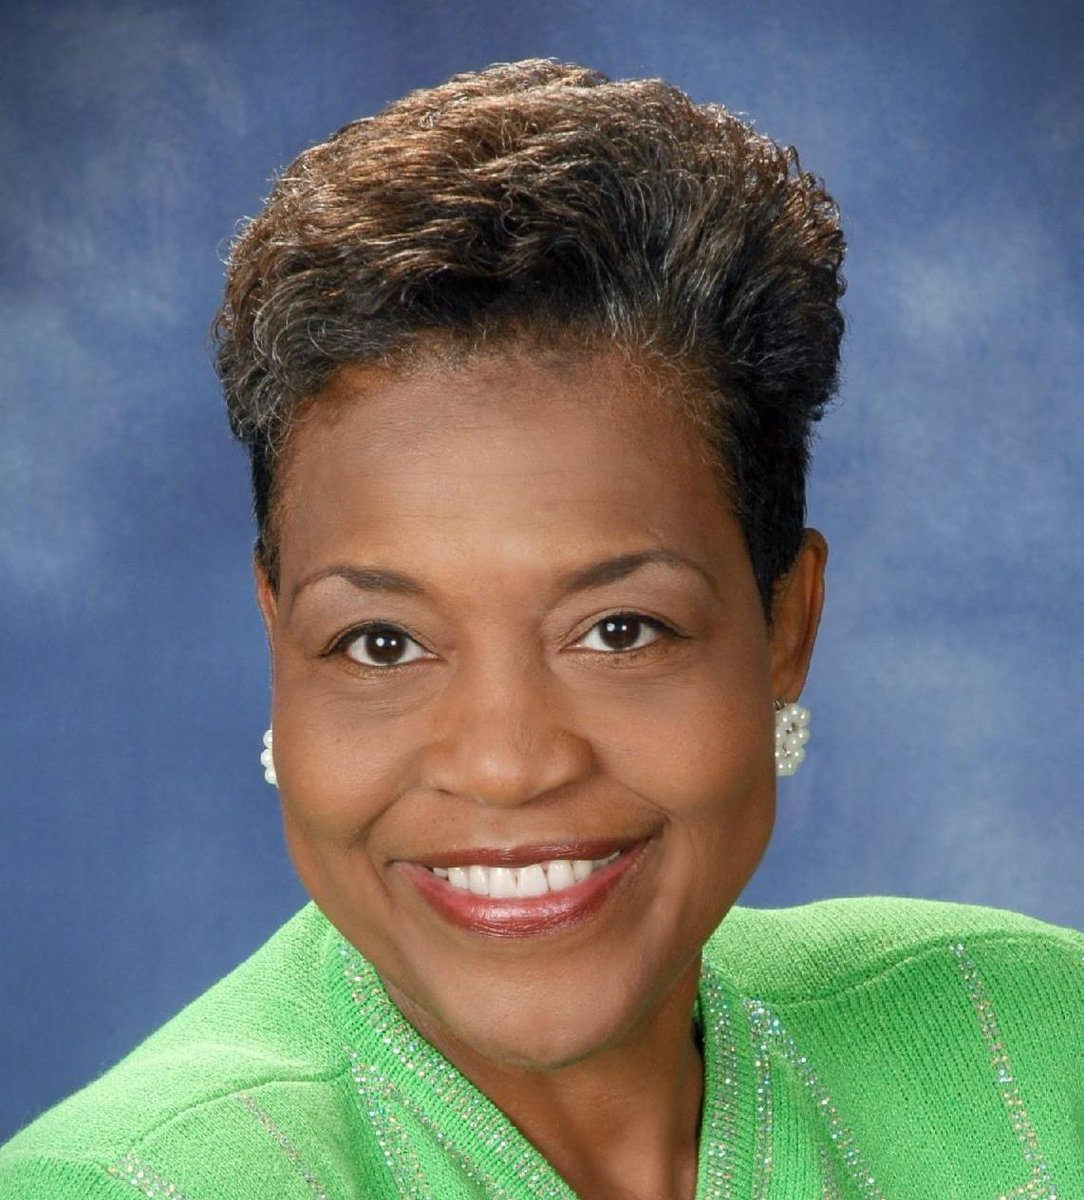 Please join the ladies of Alpha Kappa Alpha Sorority, Inc. (R) Epsilon Gamma Omega Chapter in wishing the 24th South Eastern Regional Director, Mrs. Adrienne Pope-Kelly Washington, a very happy birthday today. https://t.co/OnjUpgf5nR